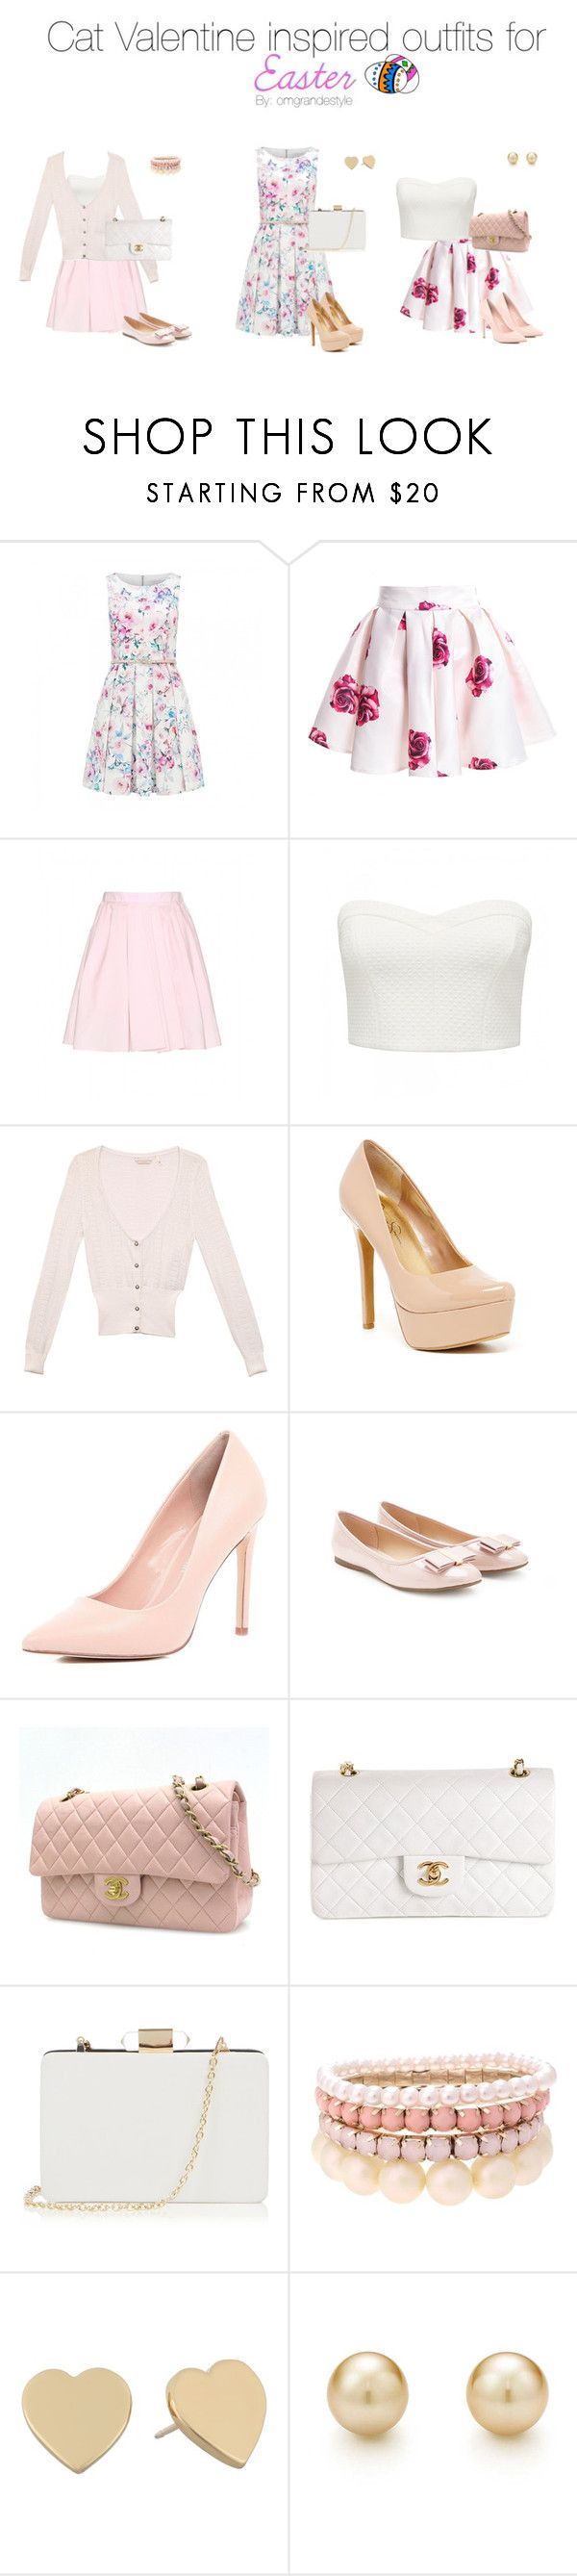 """""""Cat Valentine inspired outfits for Easter"""" by dashinggrande ❤ liked on Polyvore featuring Forever New, Carven, GUESS, Jessica Simpson, River Island, Forever 21, Chanel, Oasis, Lipsy and Kate Spade"""